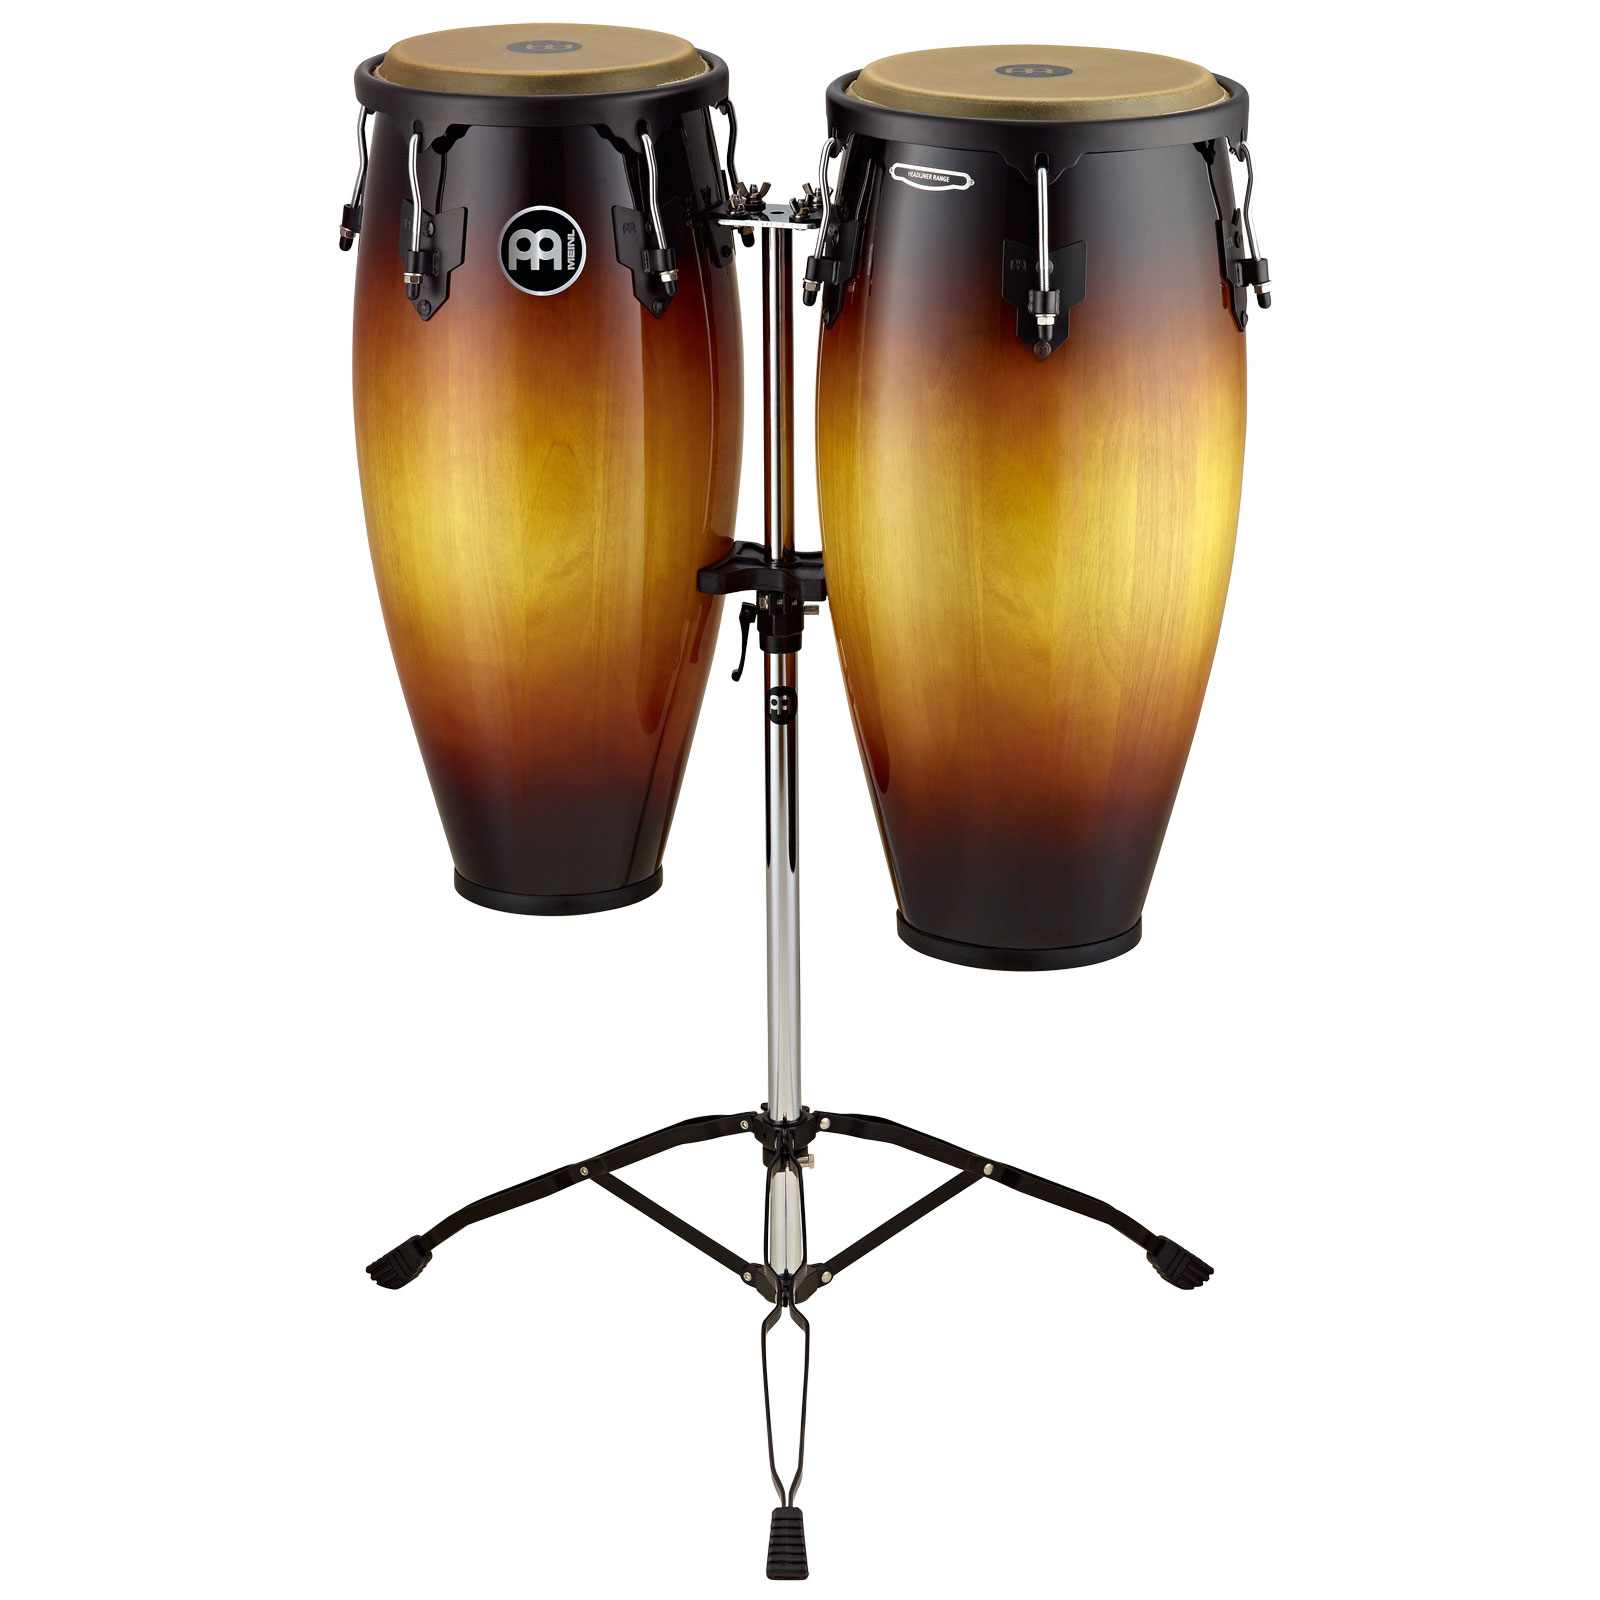 "Meinl 10"" & 11"" Headliner Series Conga Set in Vintage Sunburst with Stand"